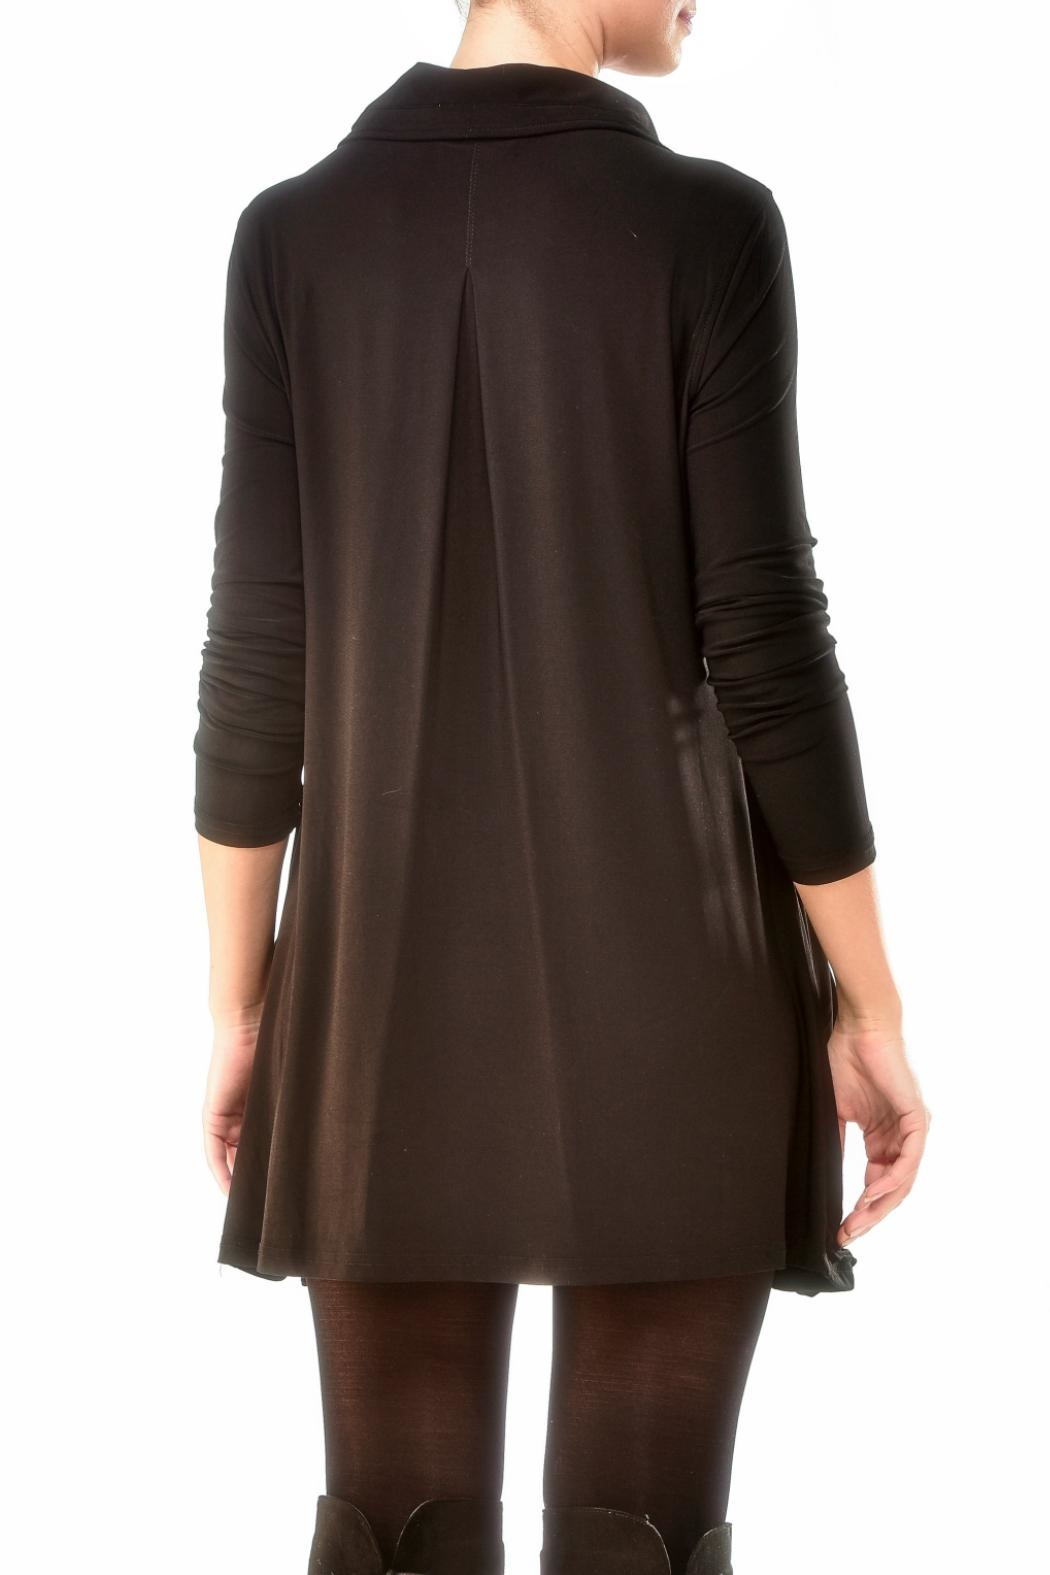 Charlie Paige Zippered Knit Tunic Top - Front Full Image